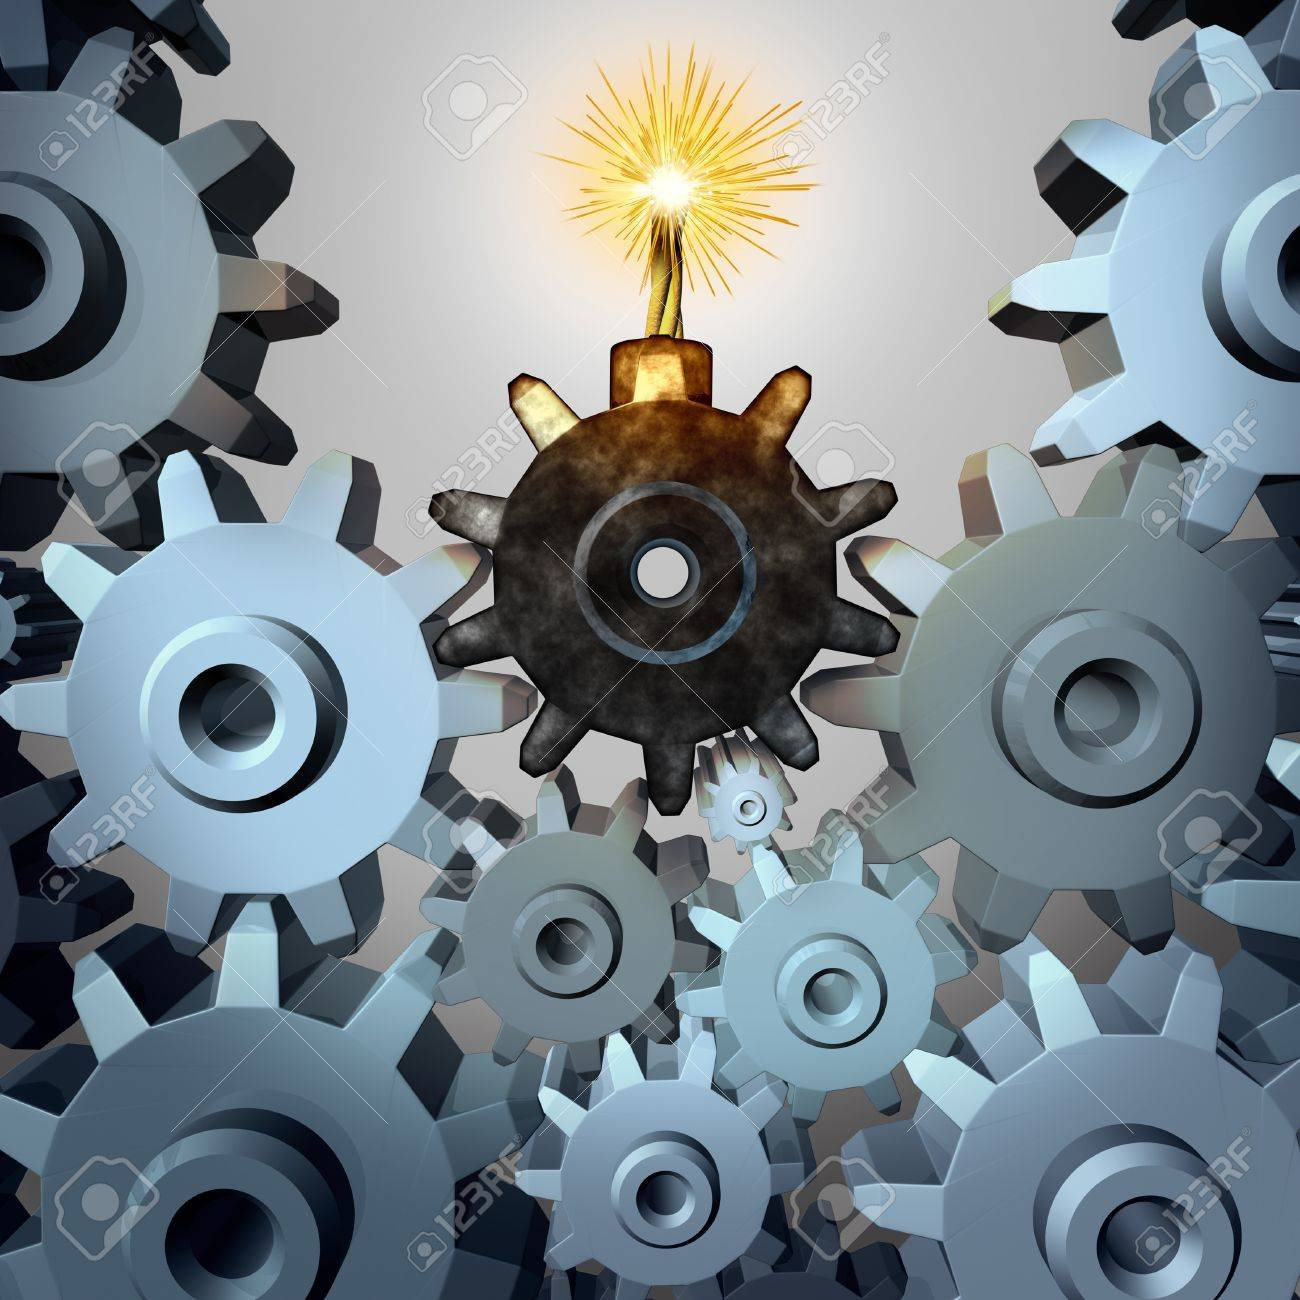 Industry time bomb and financial bubble business concept and metaphor with a group of cogs and gear wheels with one cog in the shape of an exploding device as a symbol of investing danger and inherent risk Stock Photo - 20403932